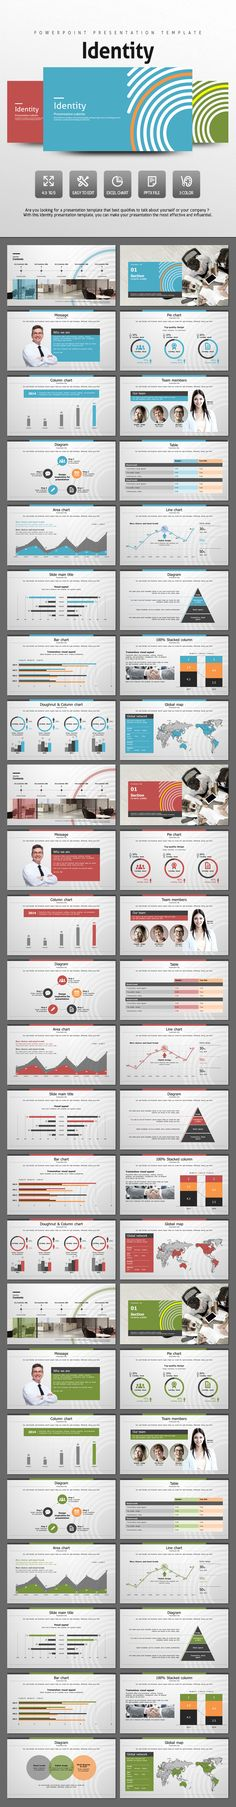 Identity PowerPoint Template #design #slides Download: http://graphicriver.net/item/identity/13093070?ref=ksioks